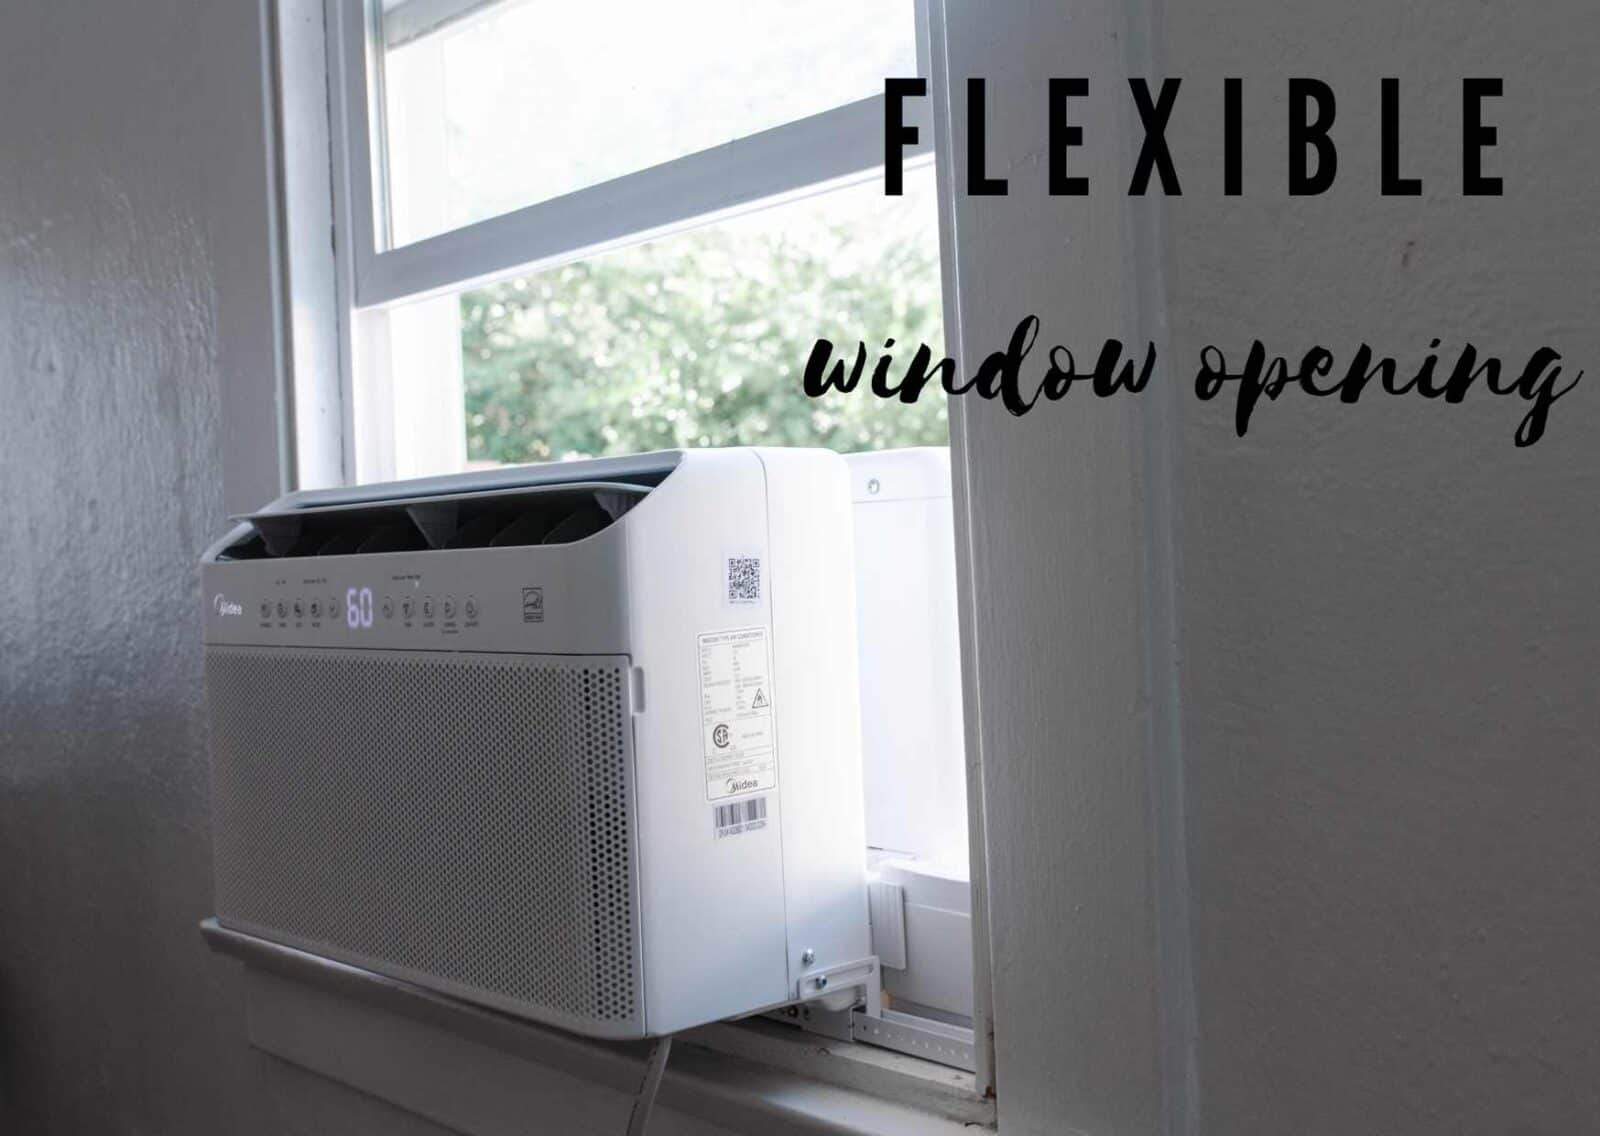 flexible window opening air conditioner